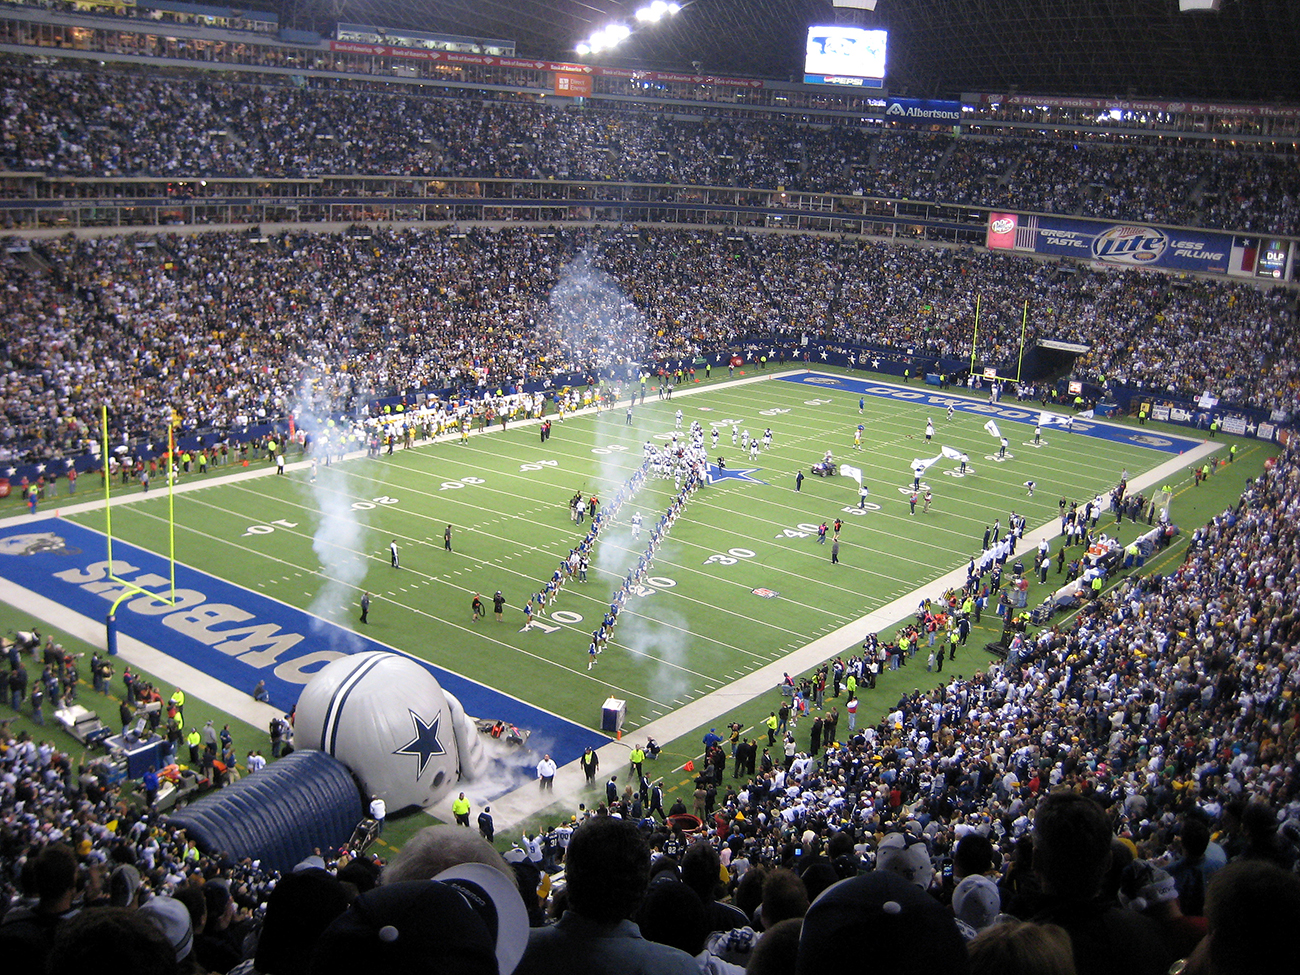 A photograph shows the inside of the stadium during a Dallas Cowboys football game.